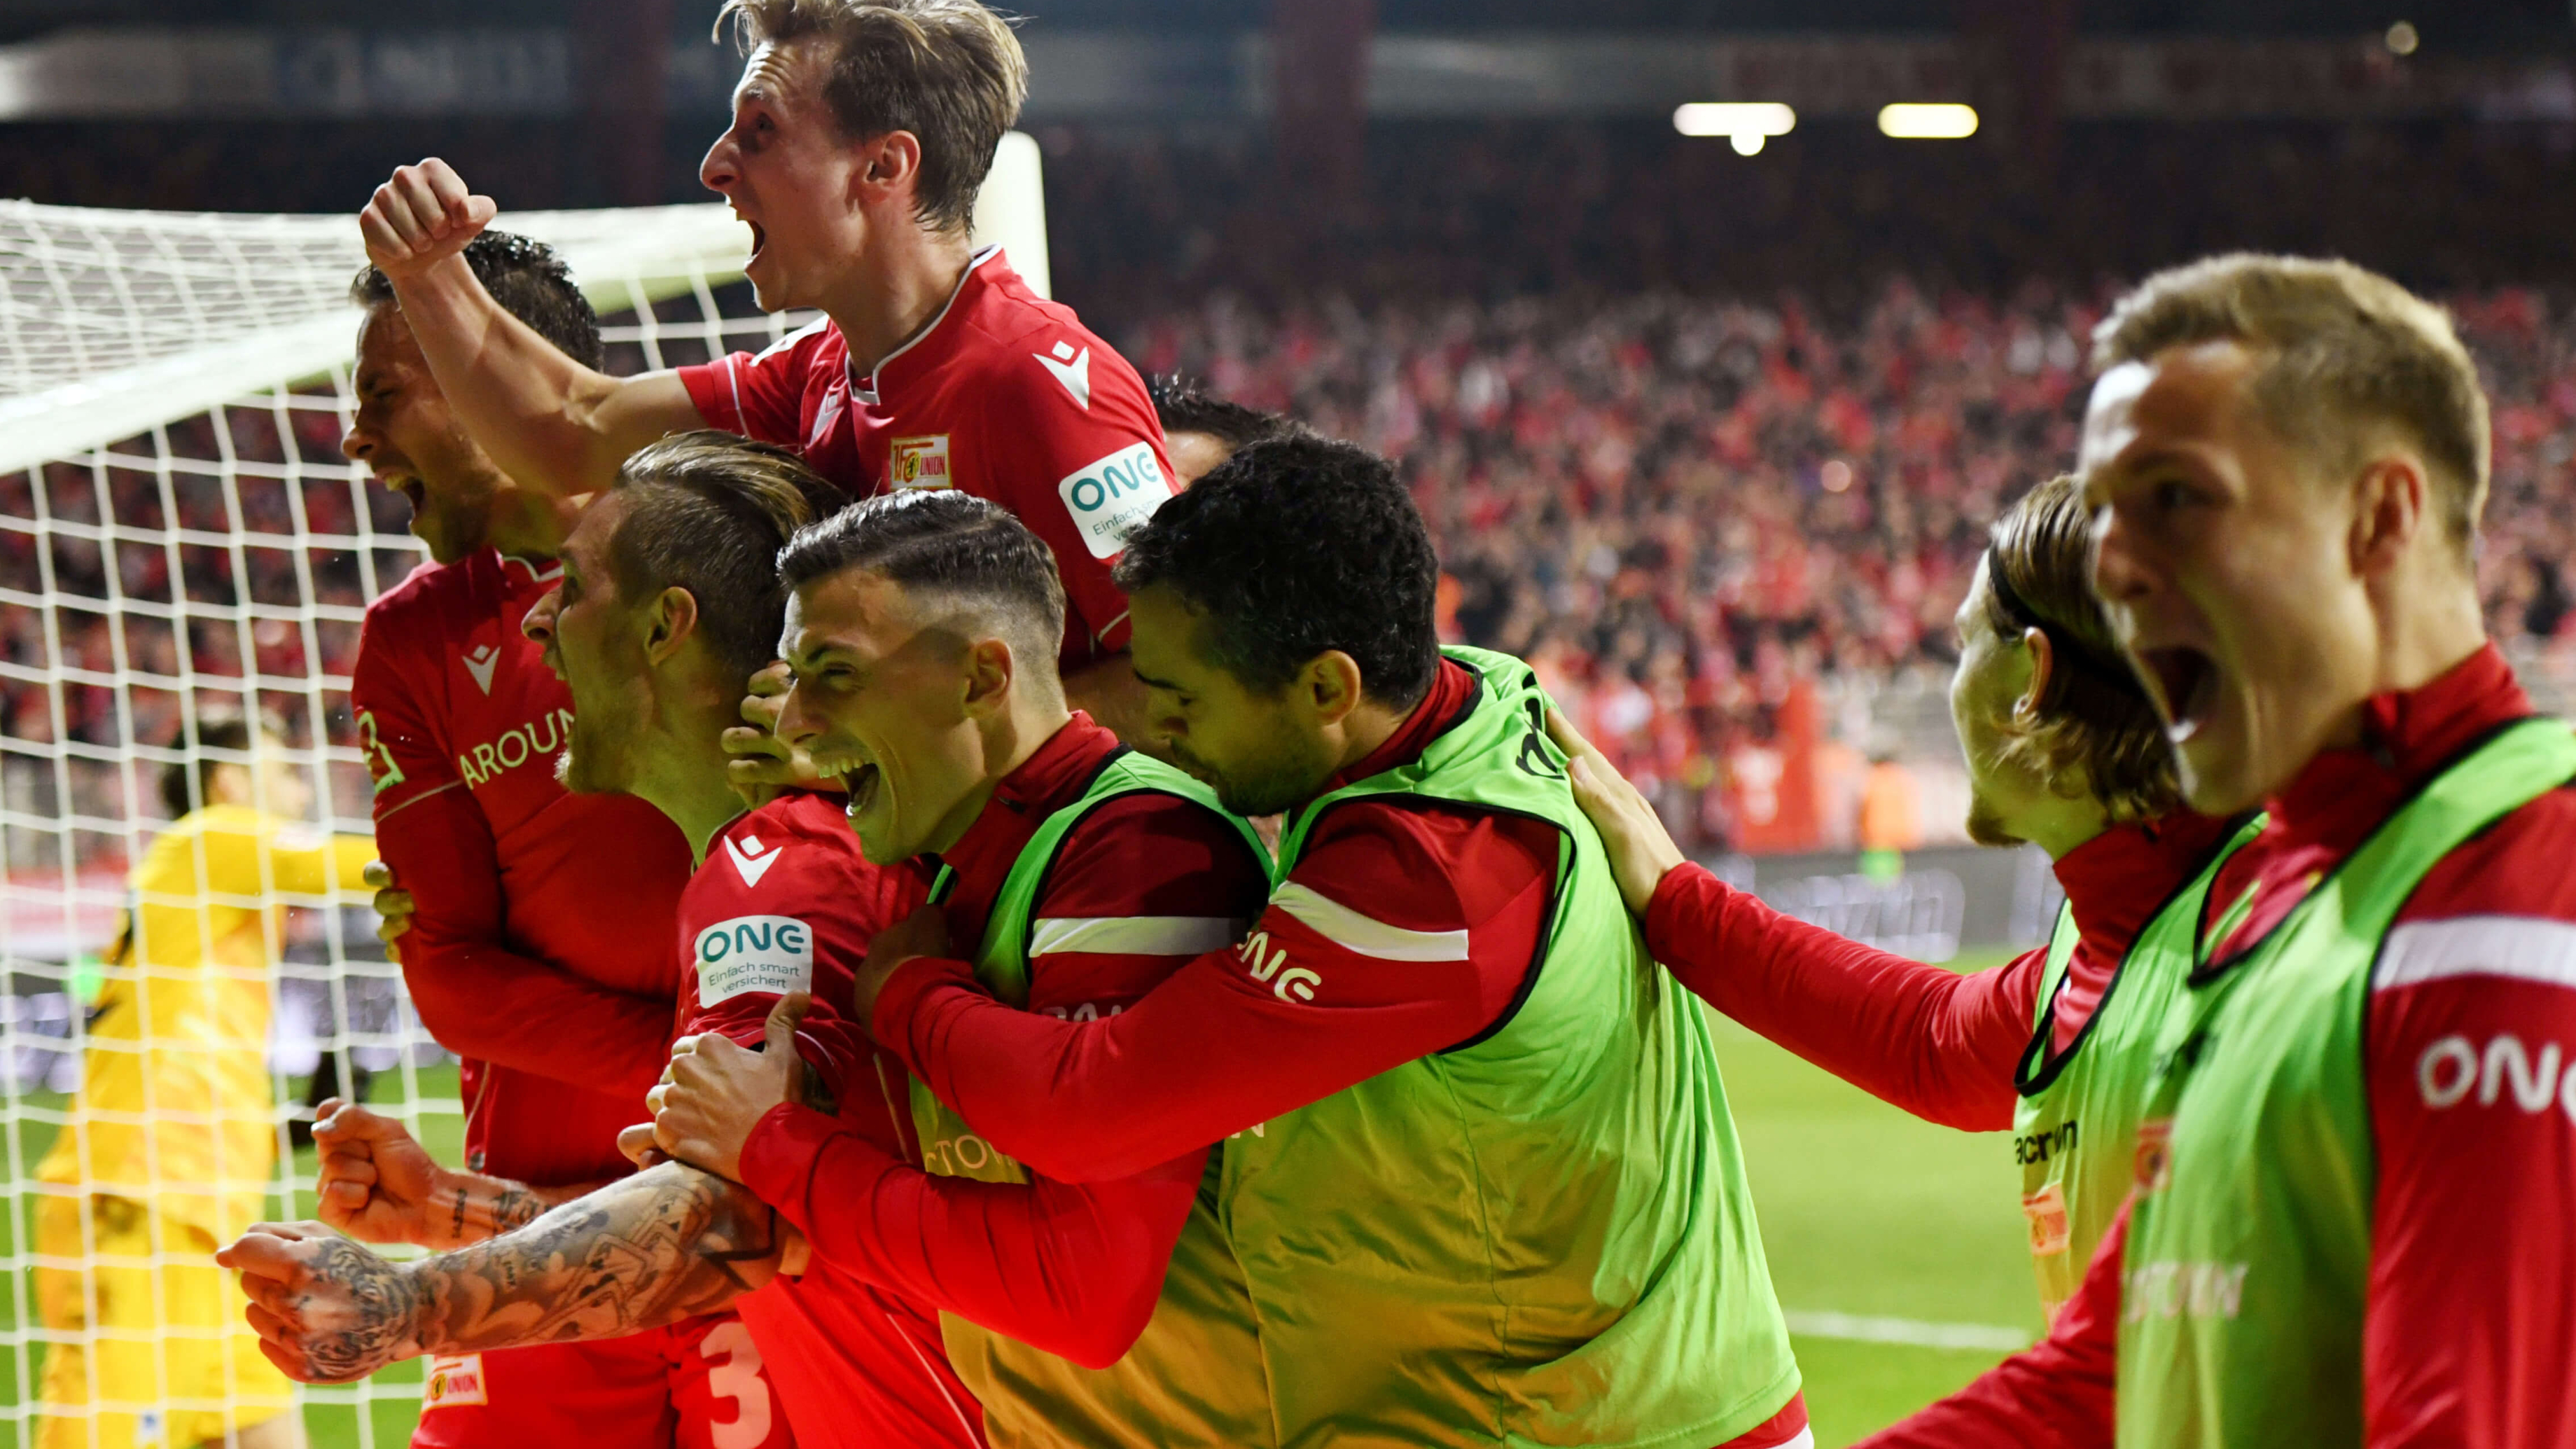 A group of men in red uniforms jump for joy on a soccer field.